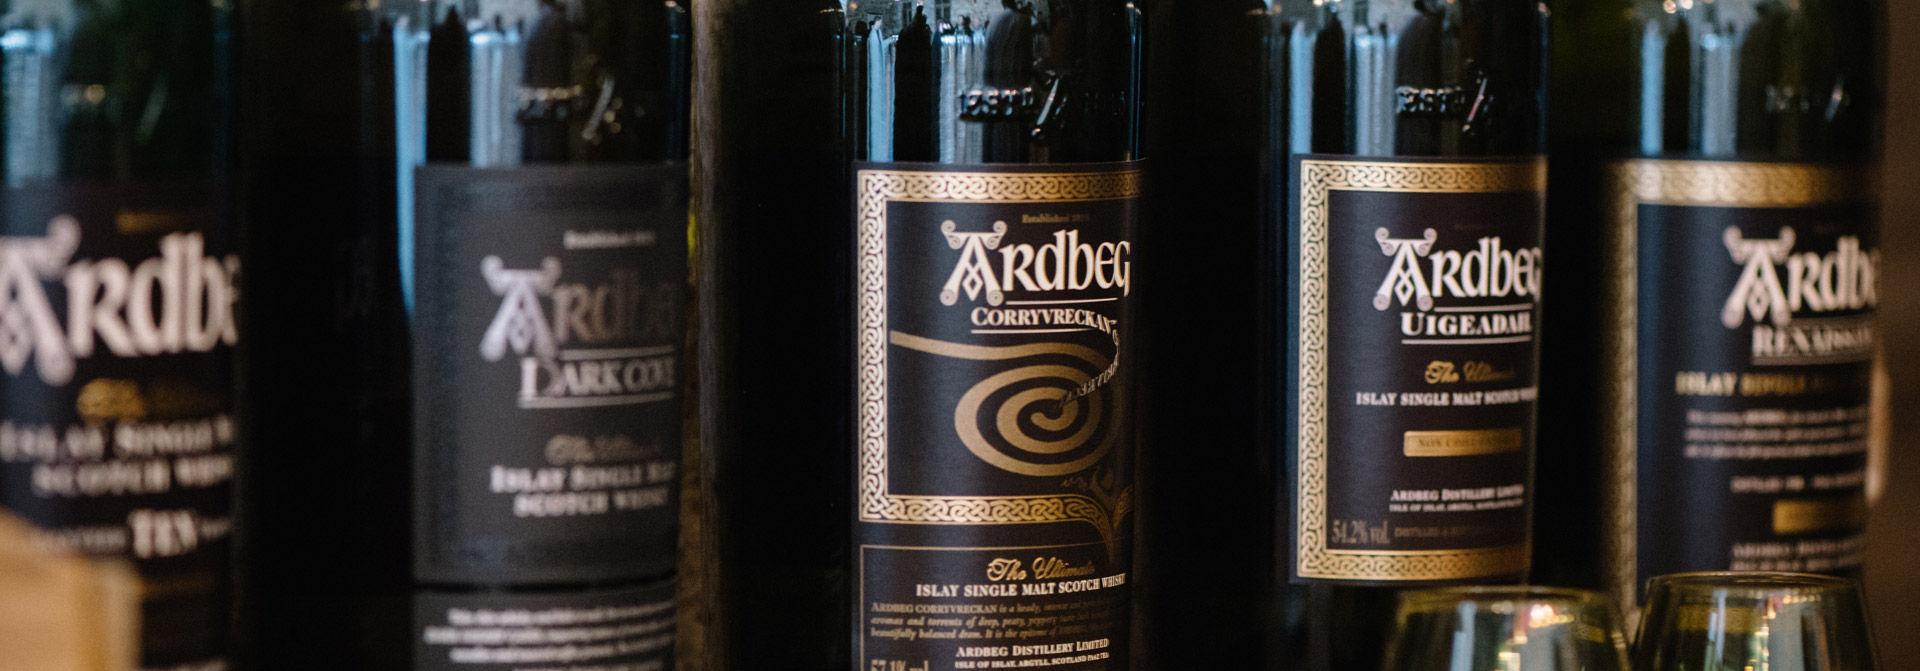 whisky tasting Ardbeg the tasters club ουισκι